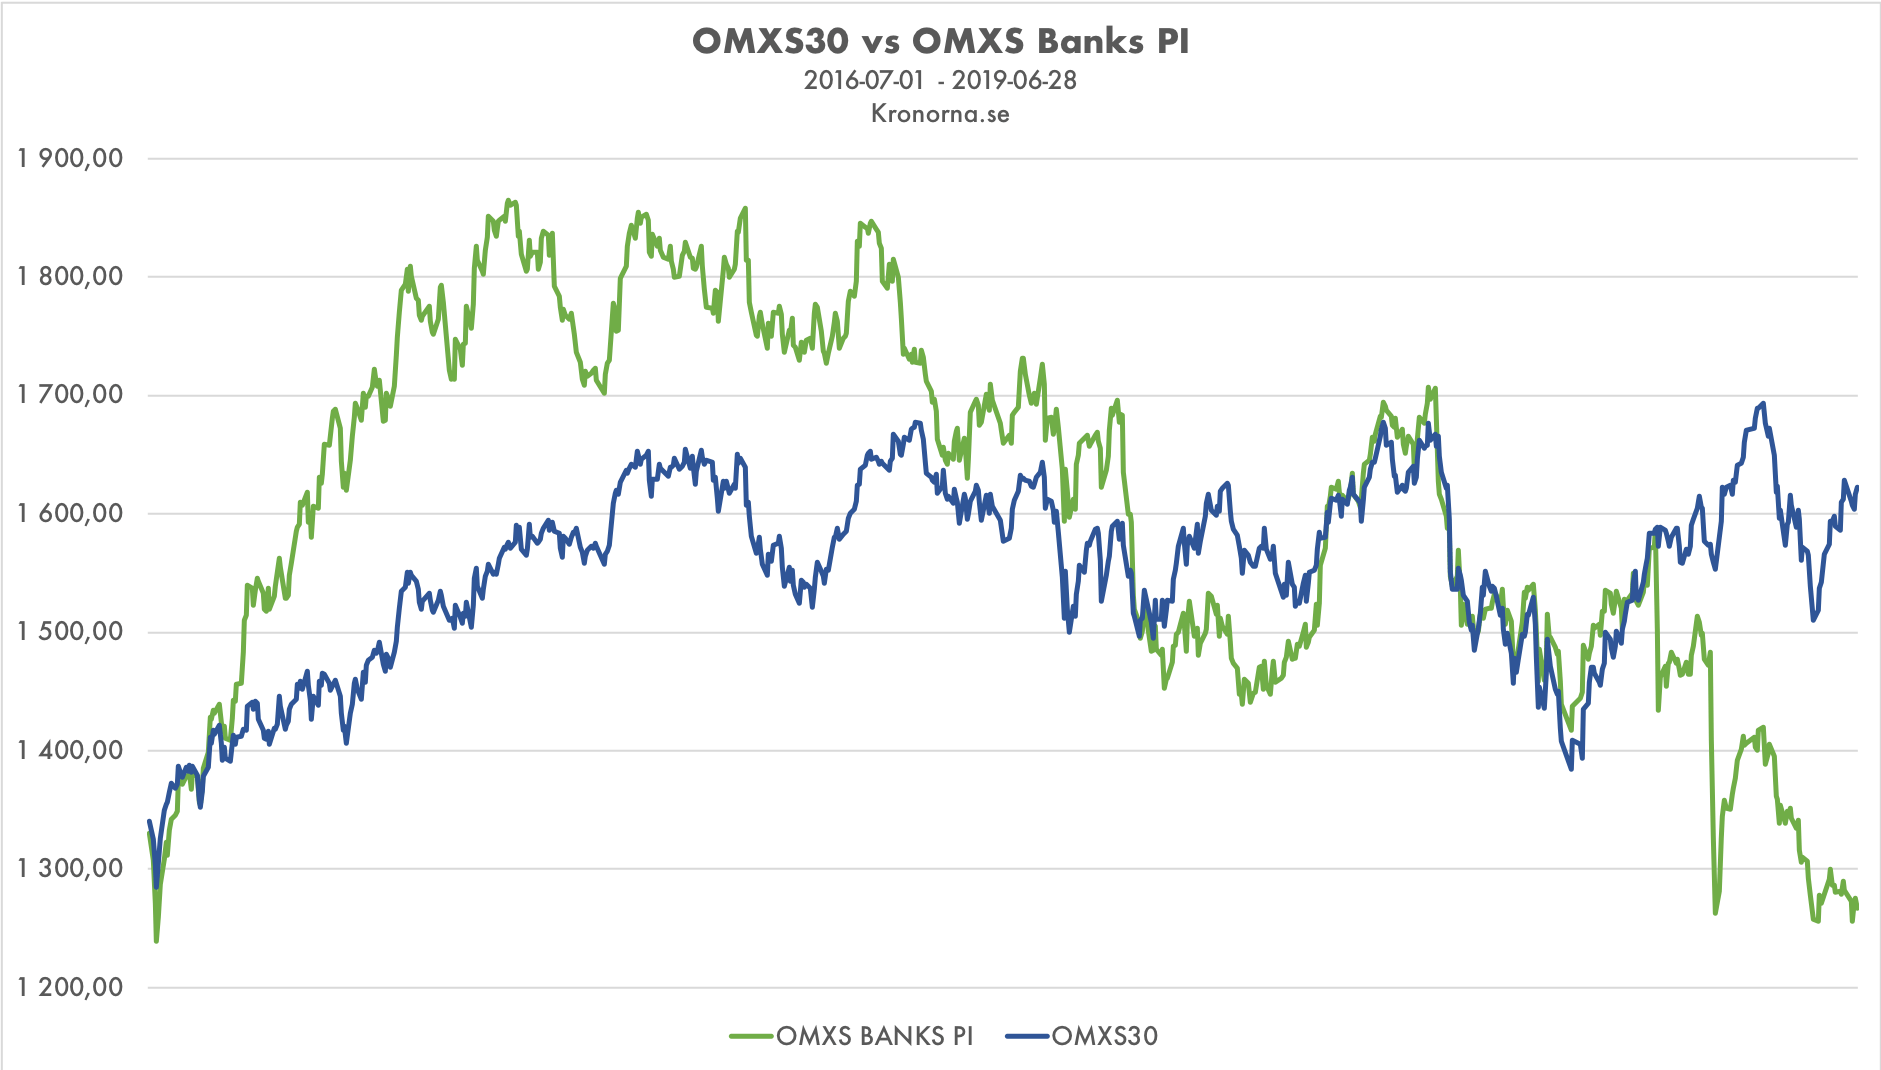 OMXS30 vs OMXS Banks PI 2016-2019